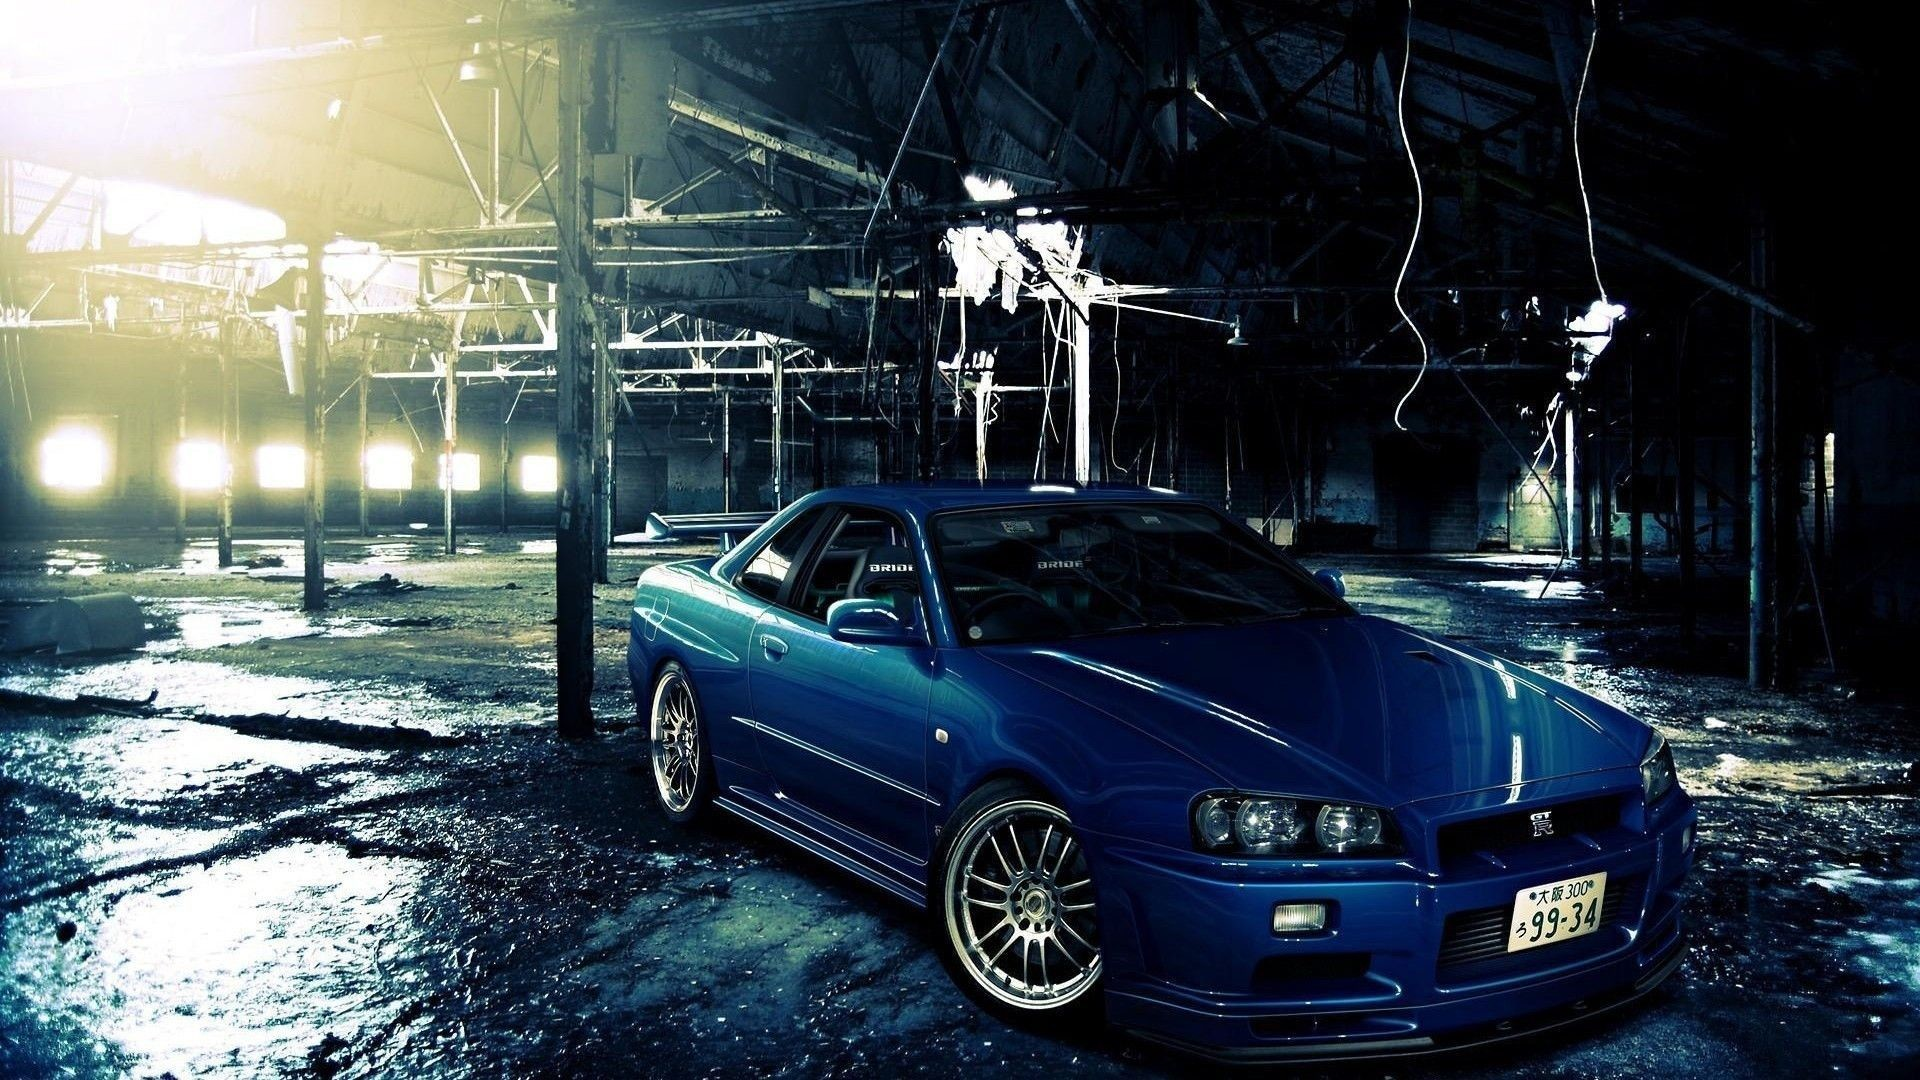 1920x1080 Nissan Skyline Gtr R34 Wallpaper